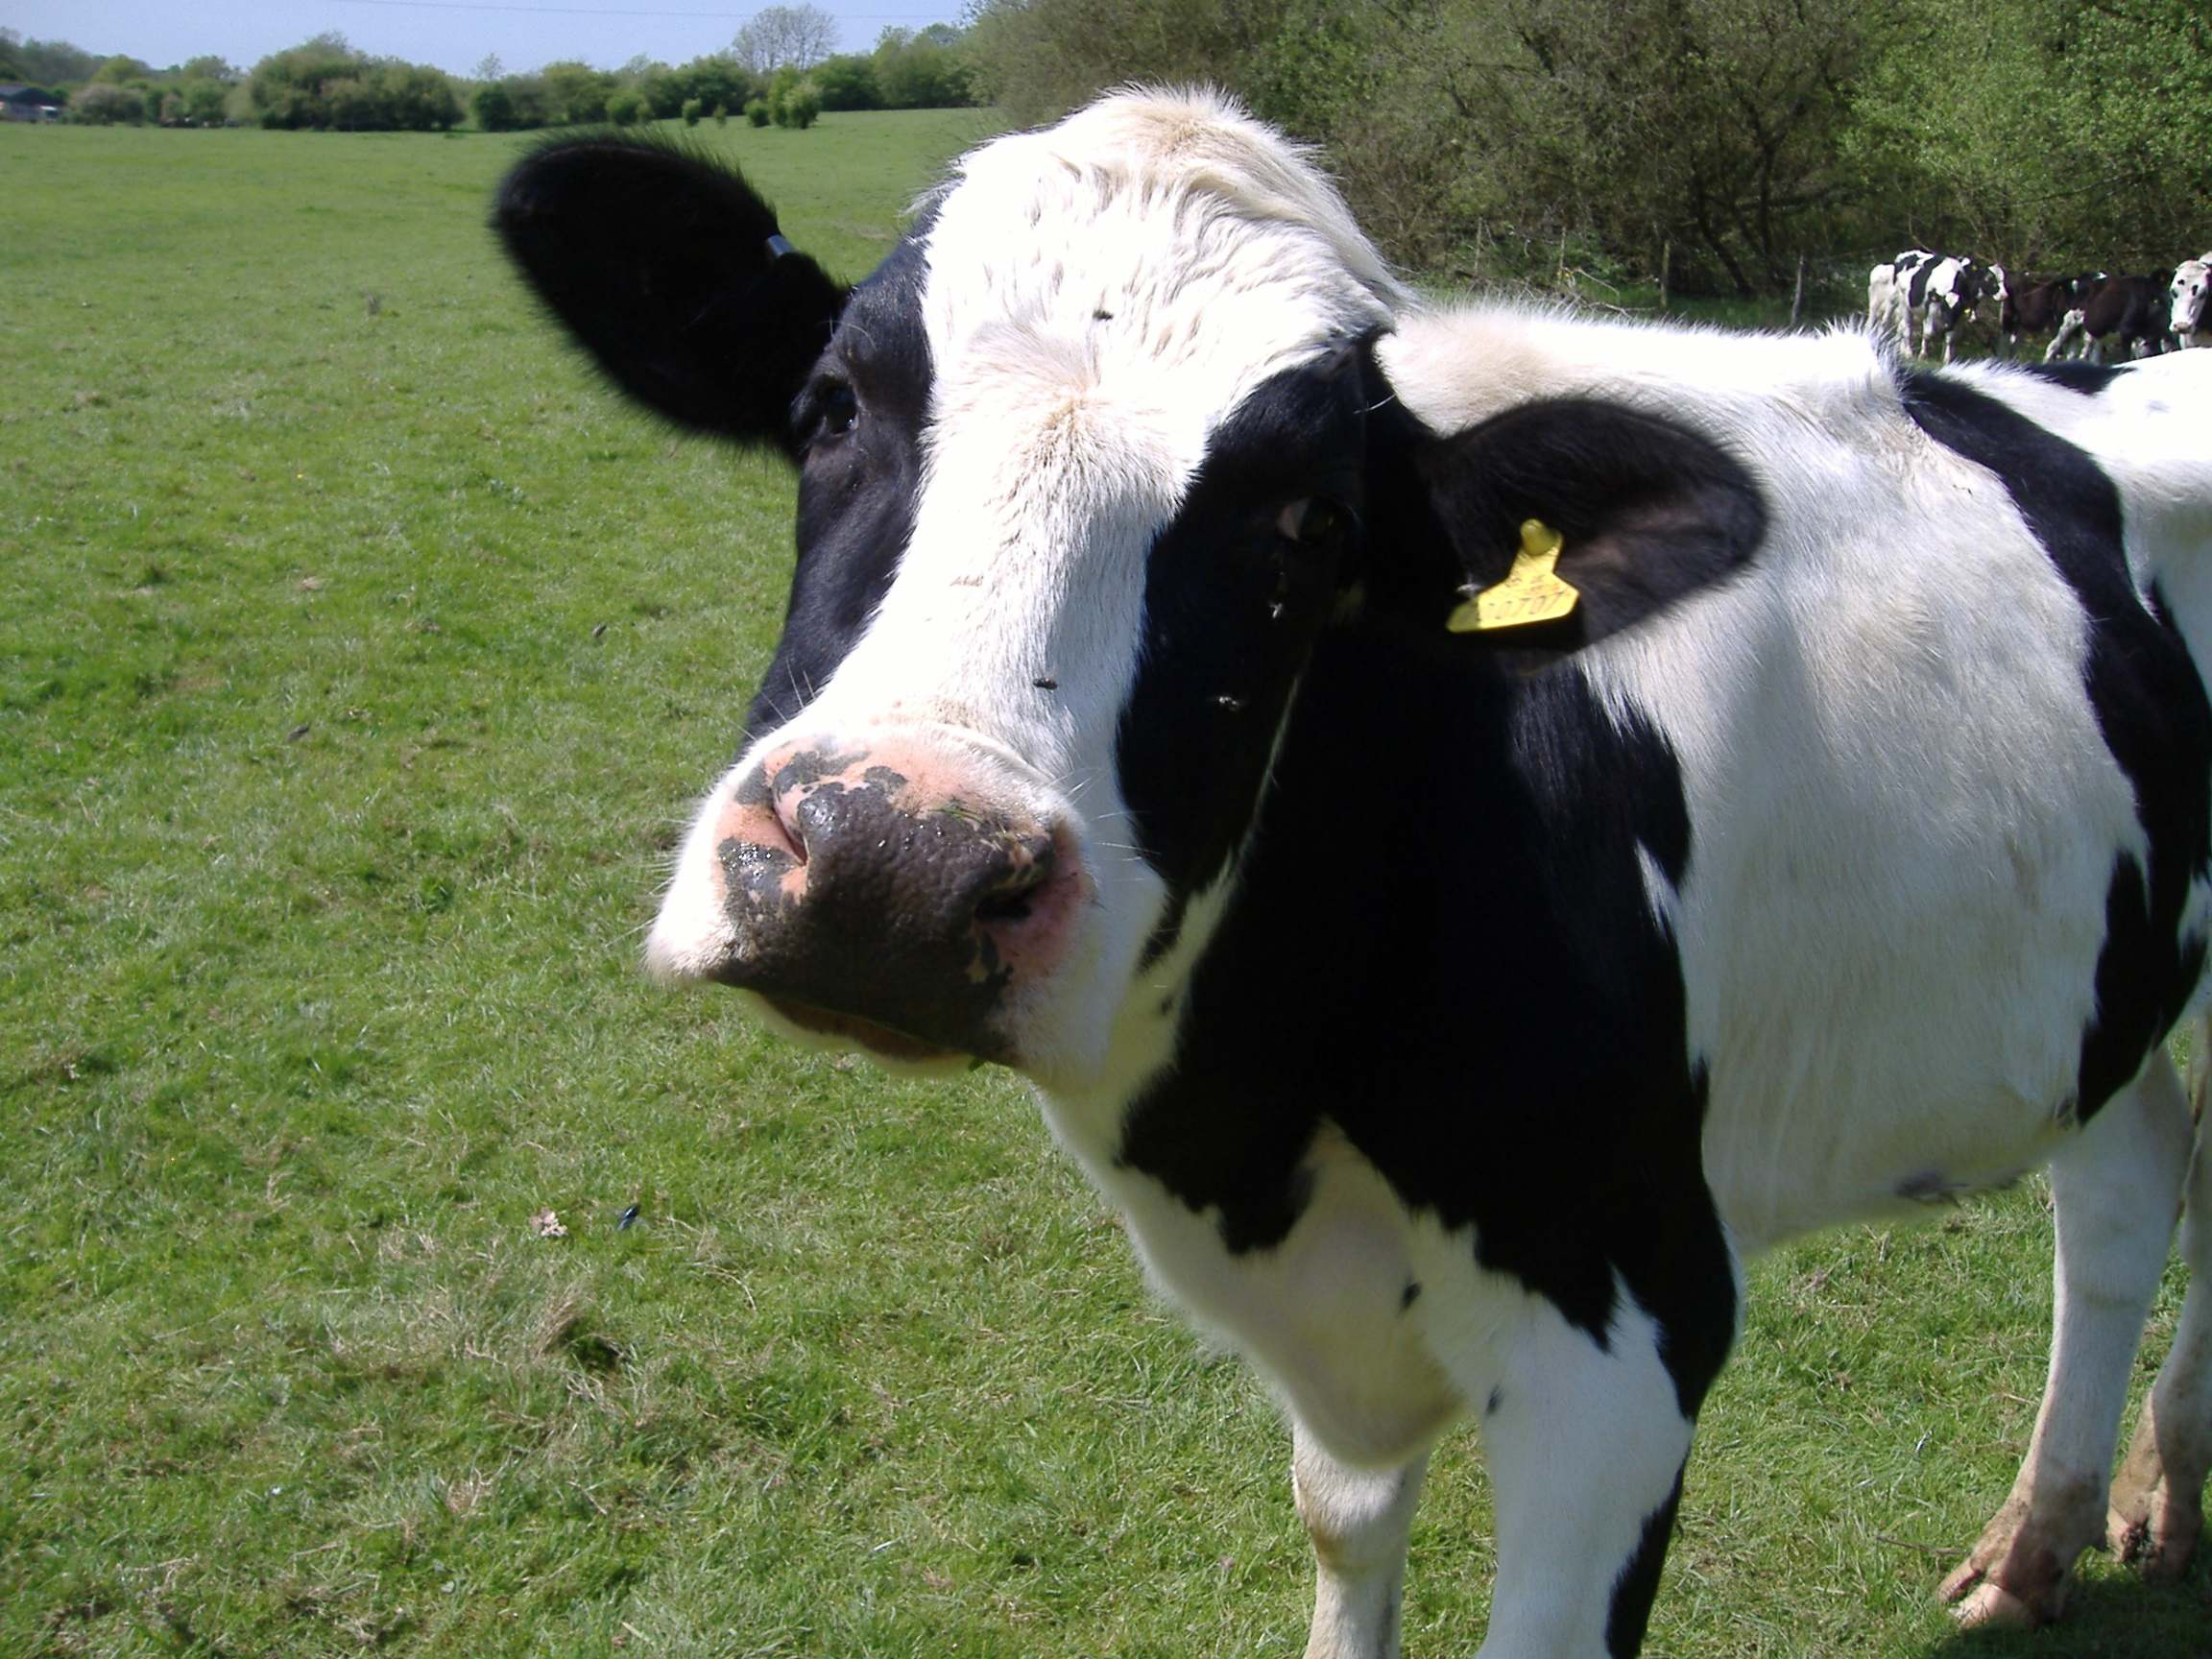 What's the singular form of 'cattle'? | Motivated Grammar